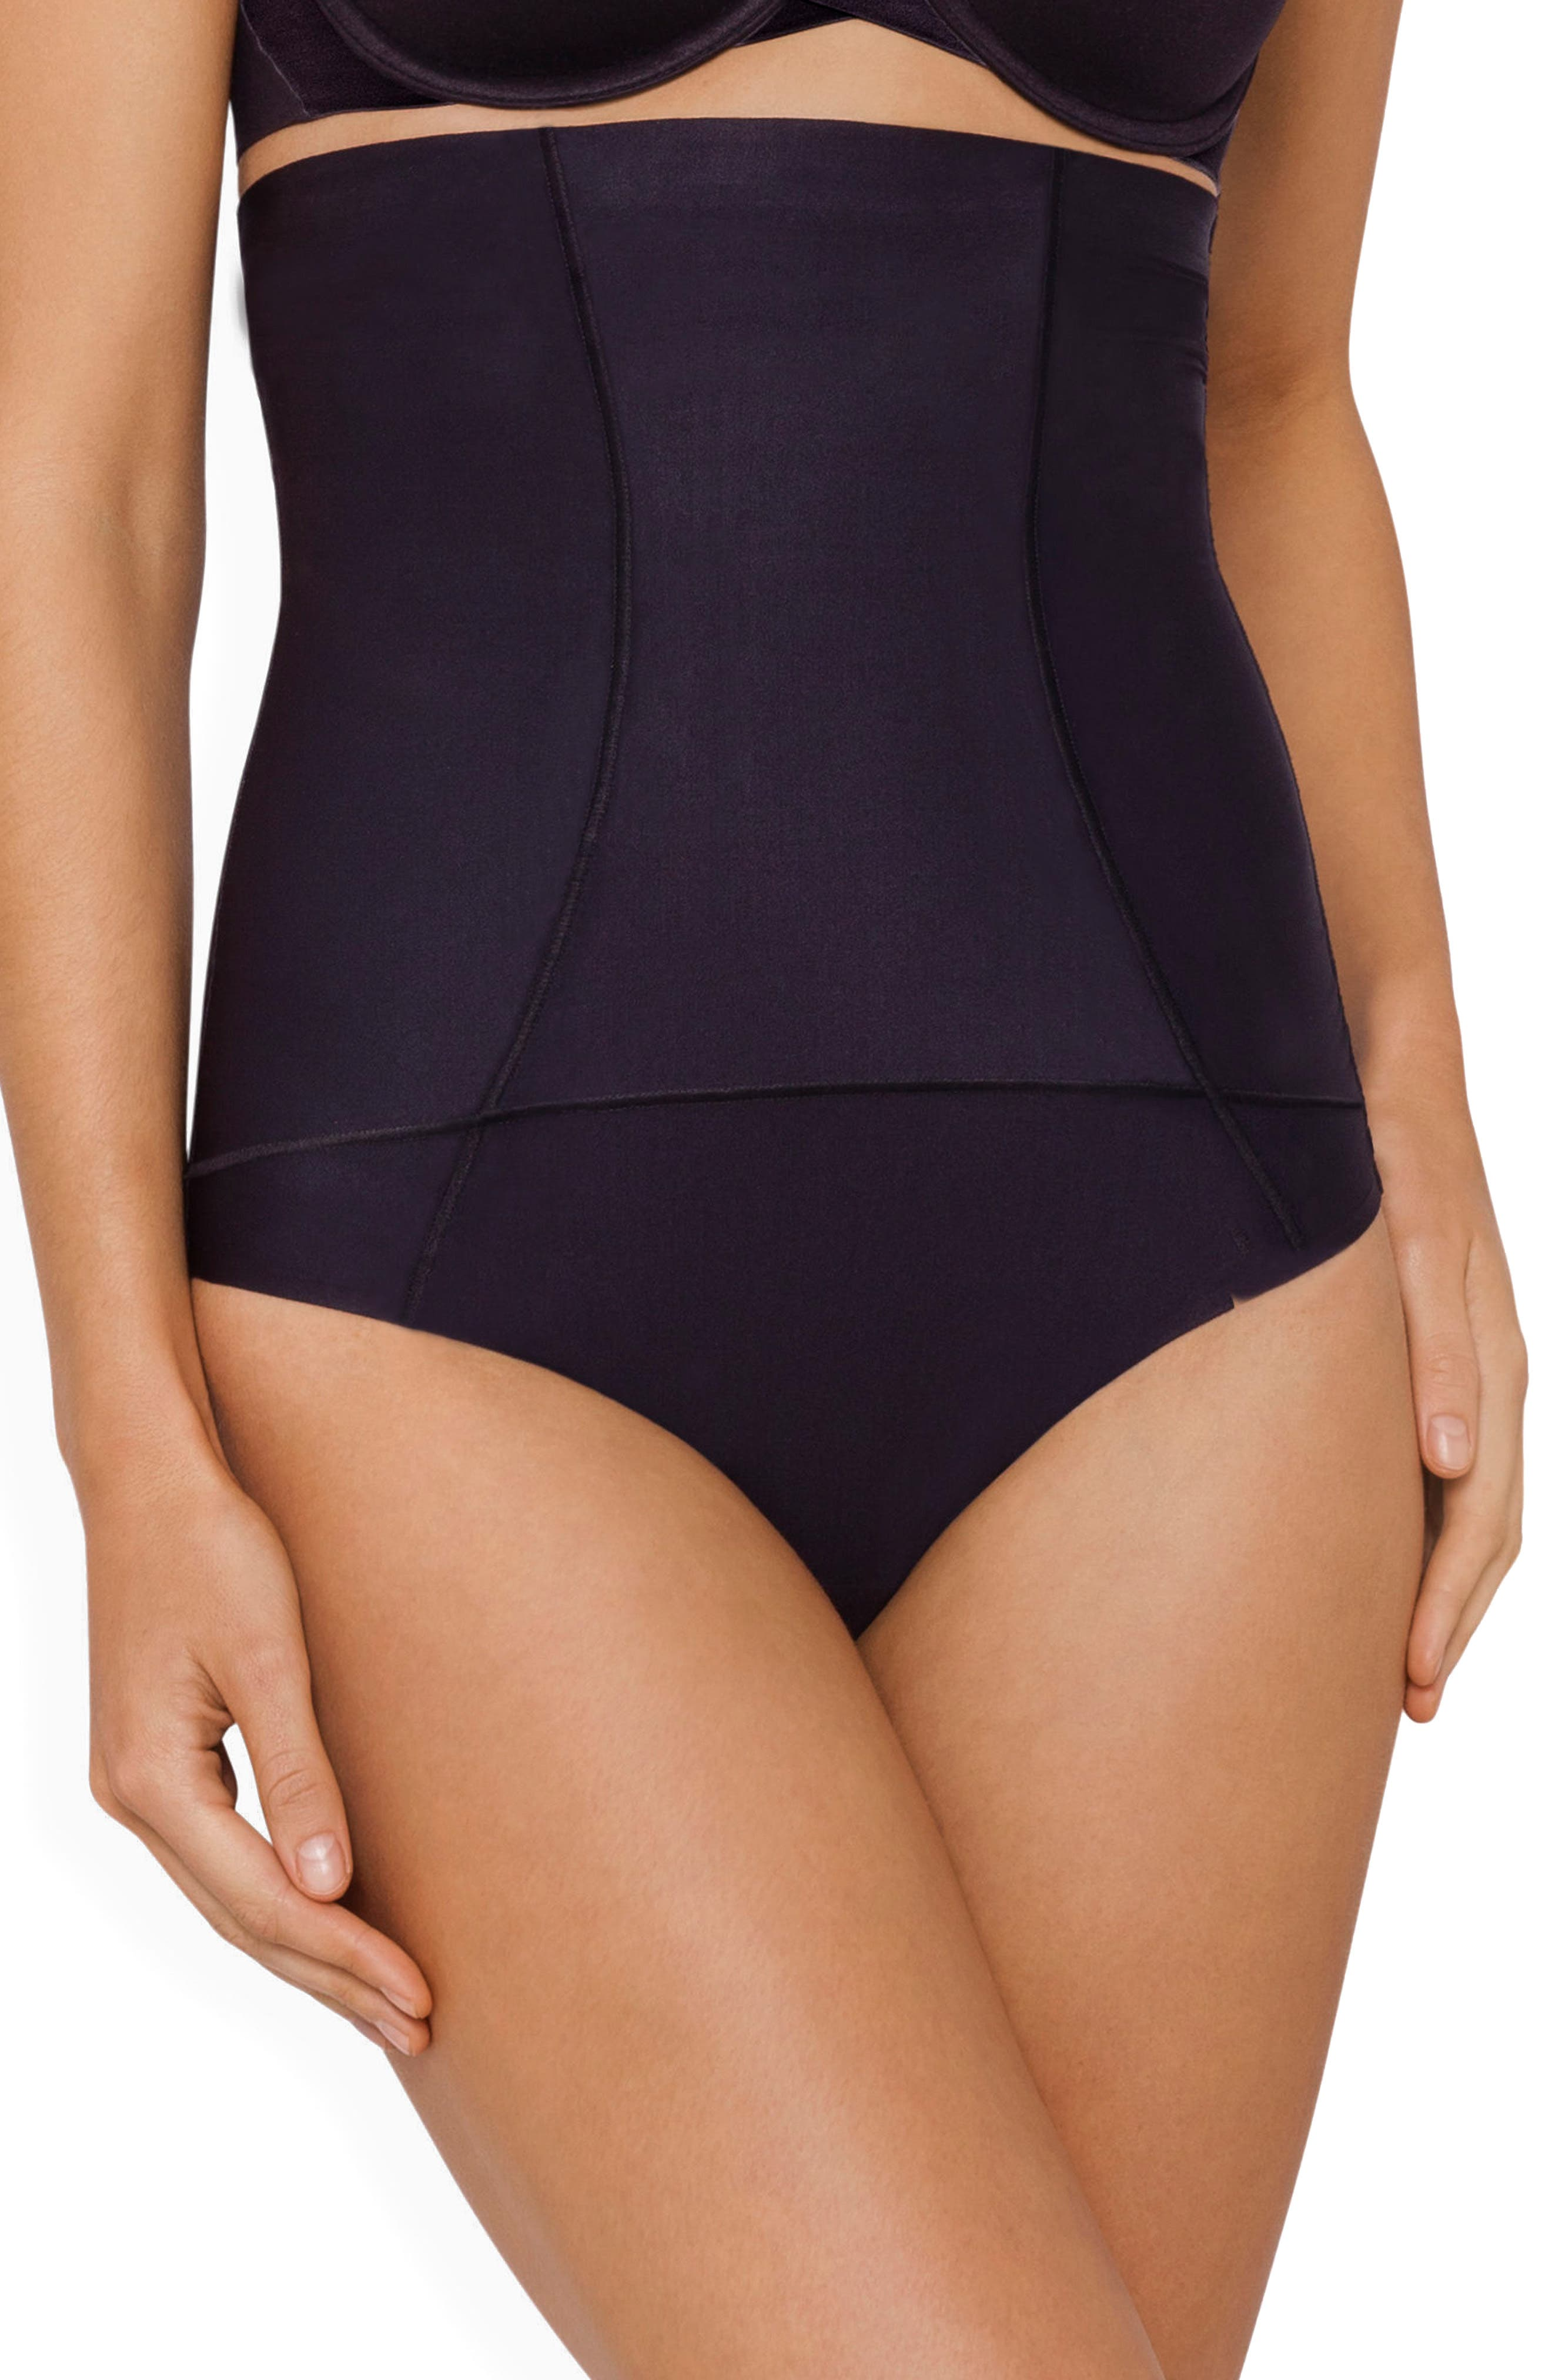 Body Architect High Waist Shaper Thong,                         Main,                         color, Black